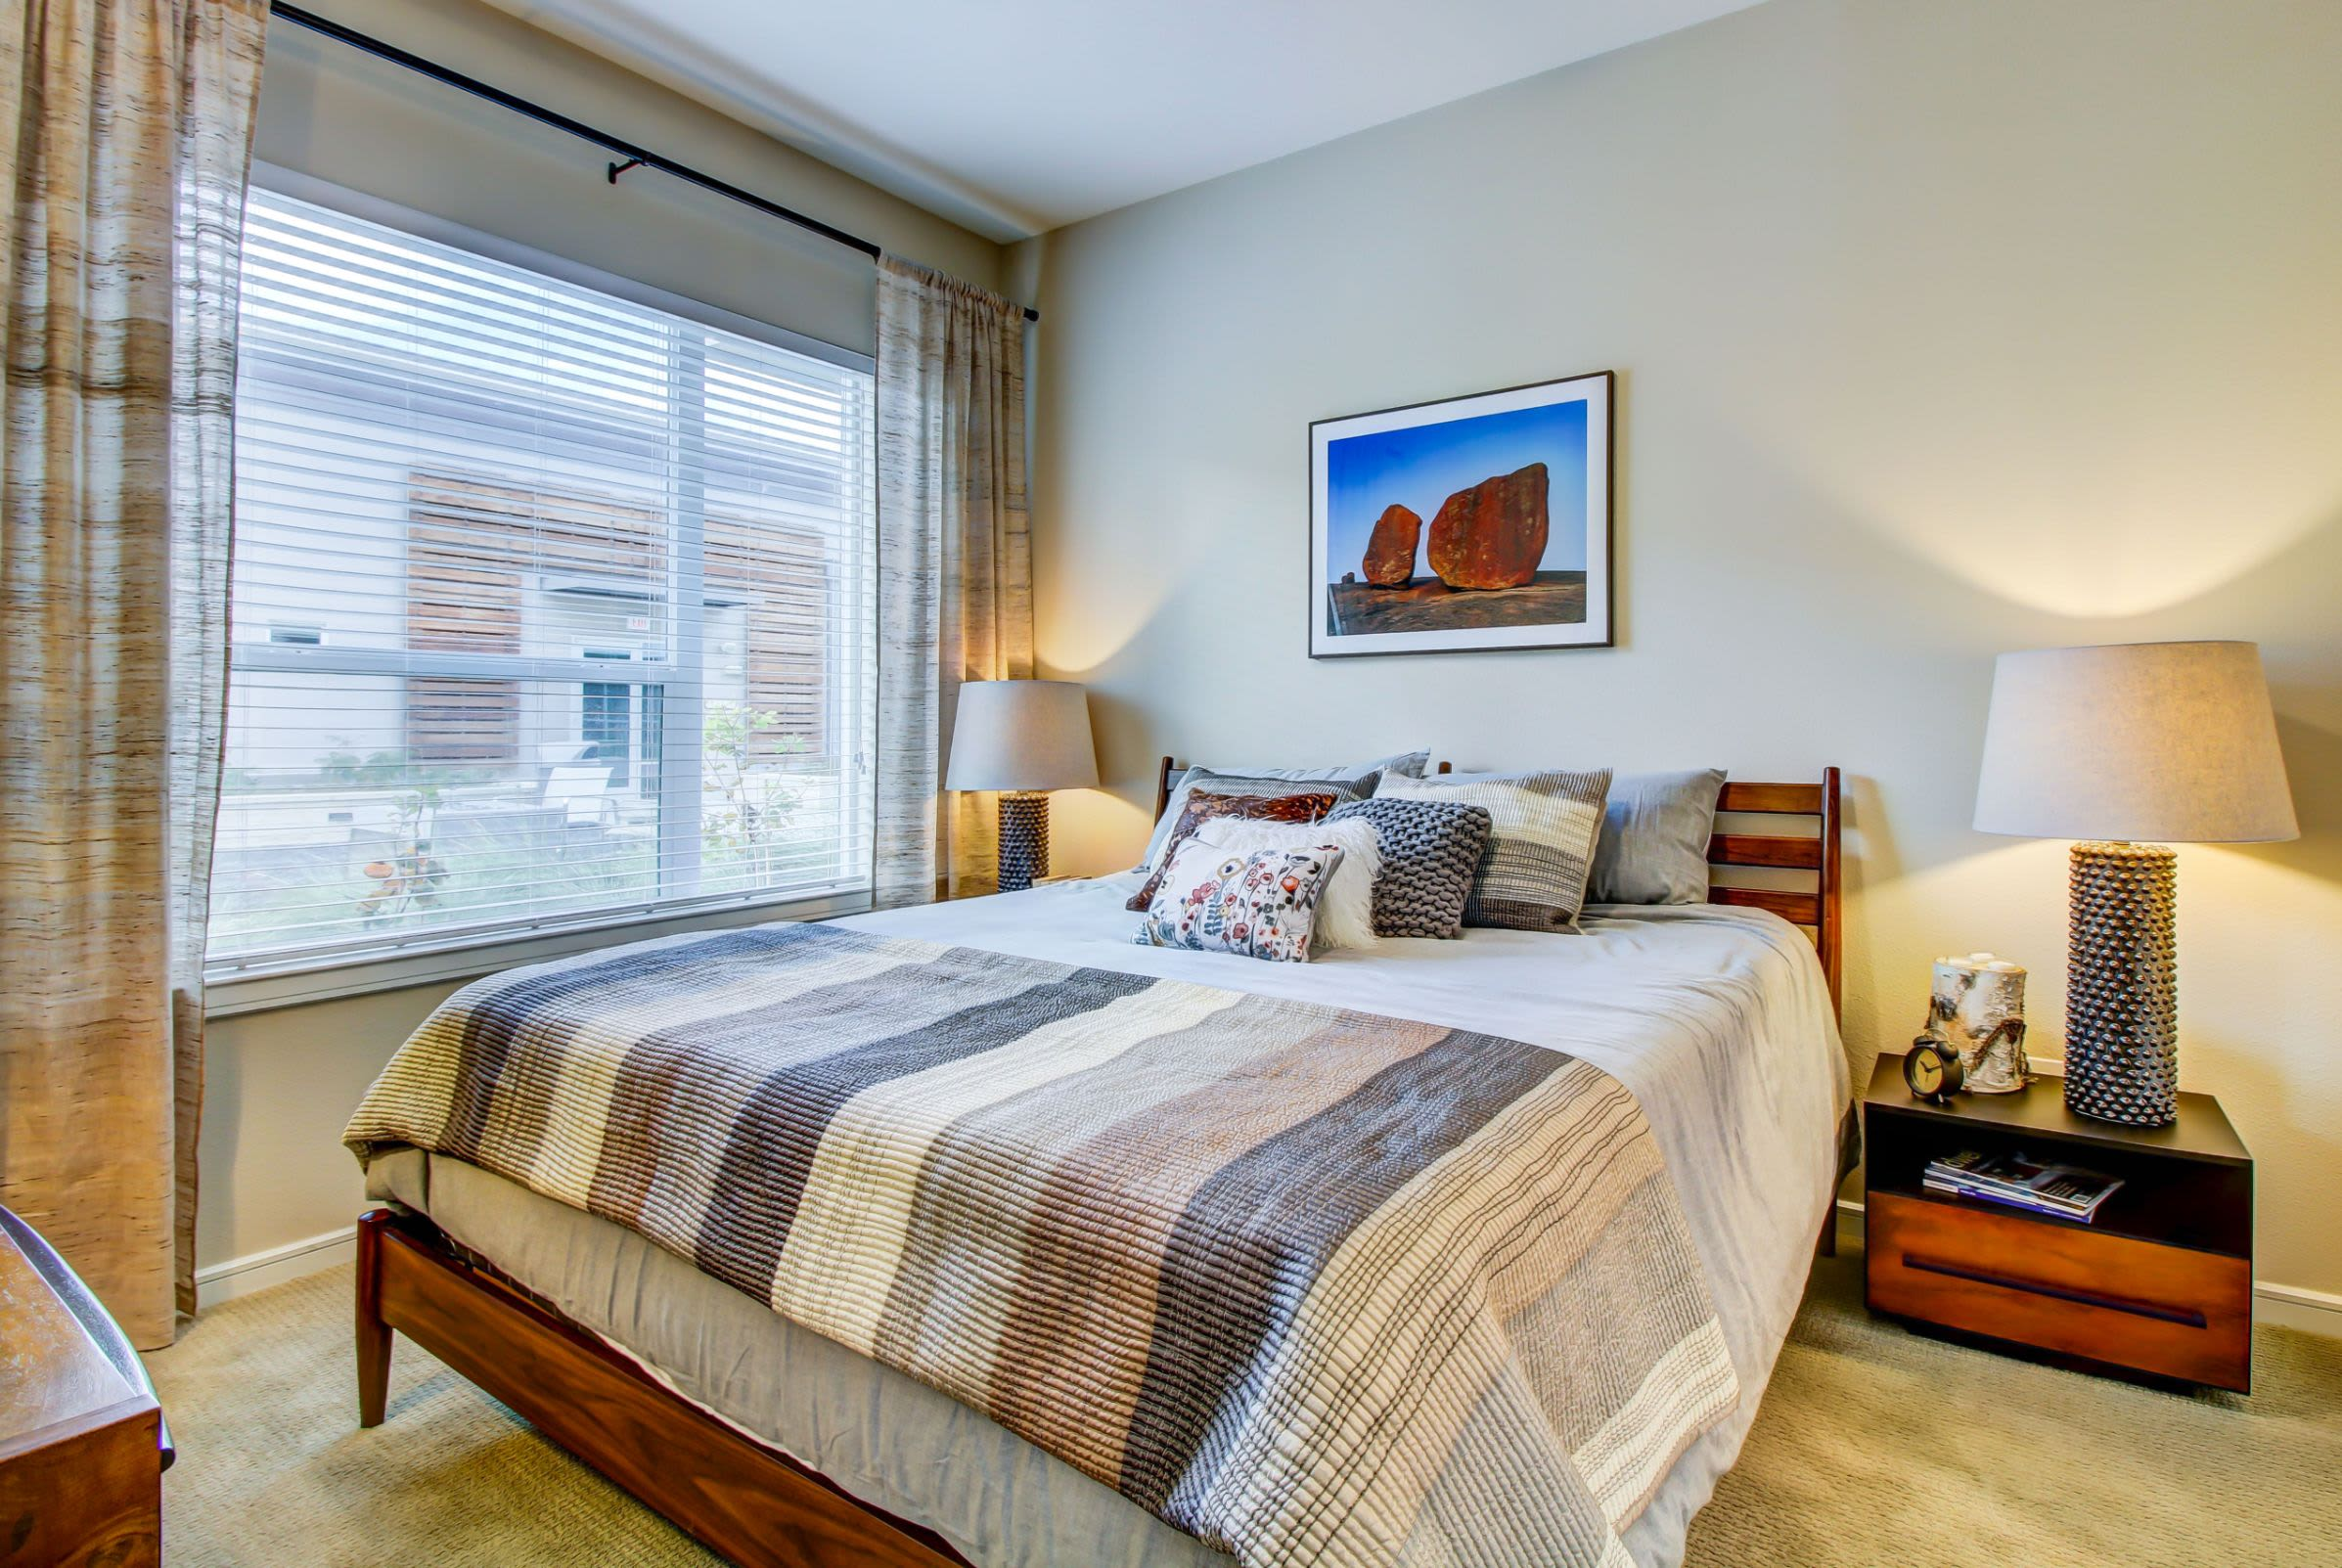 Bright bedroom with a large window at Westerly 360 in Austin, Texas